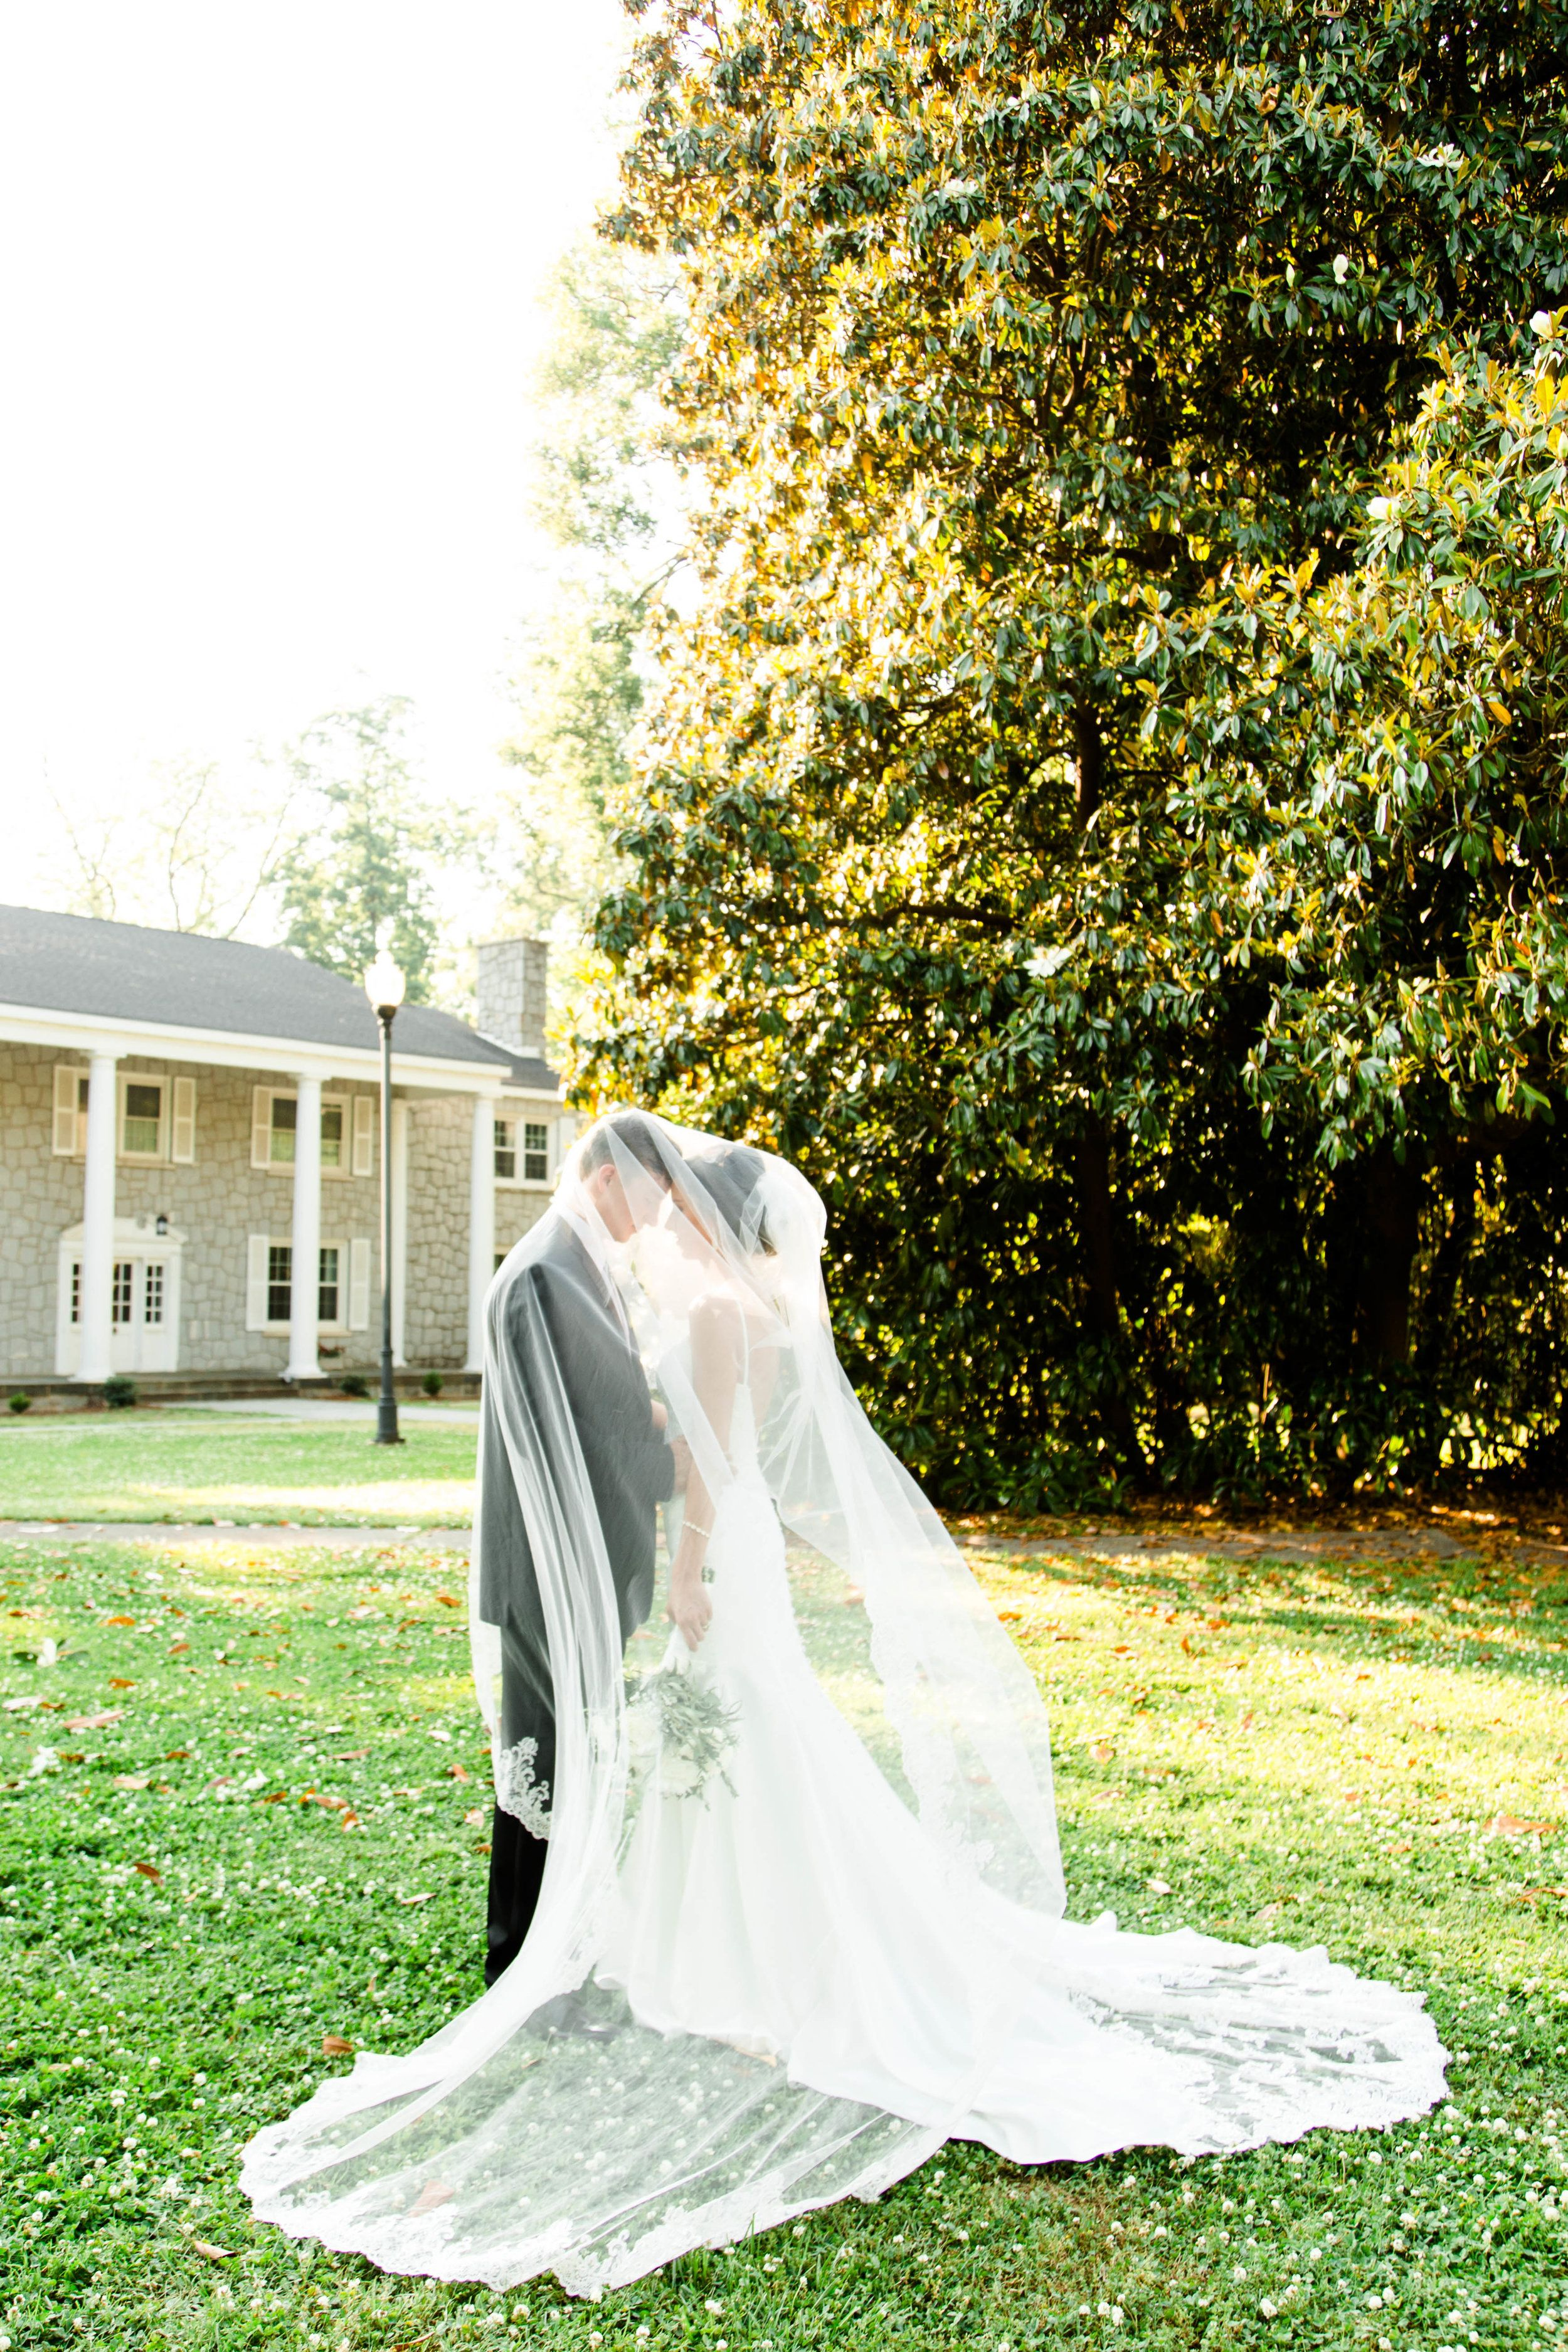 Gold white wedding dress  SPRING WEDDING AT THE LAURENS COUNTY MUSEUM  Gold  White Wedding